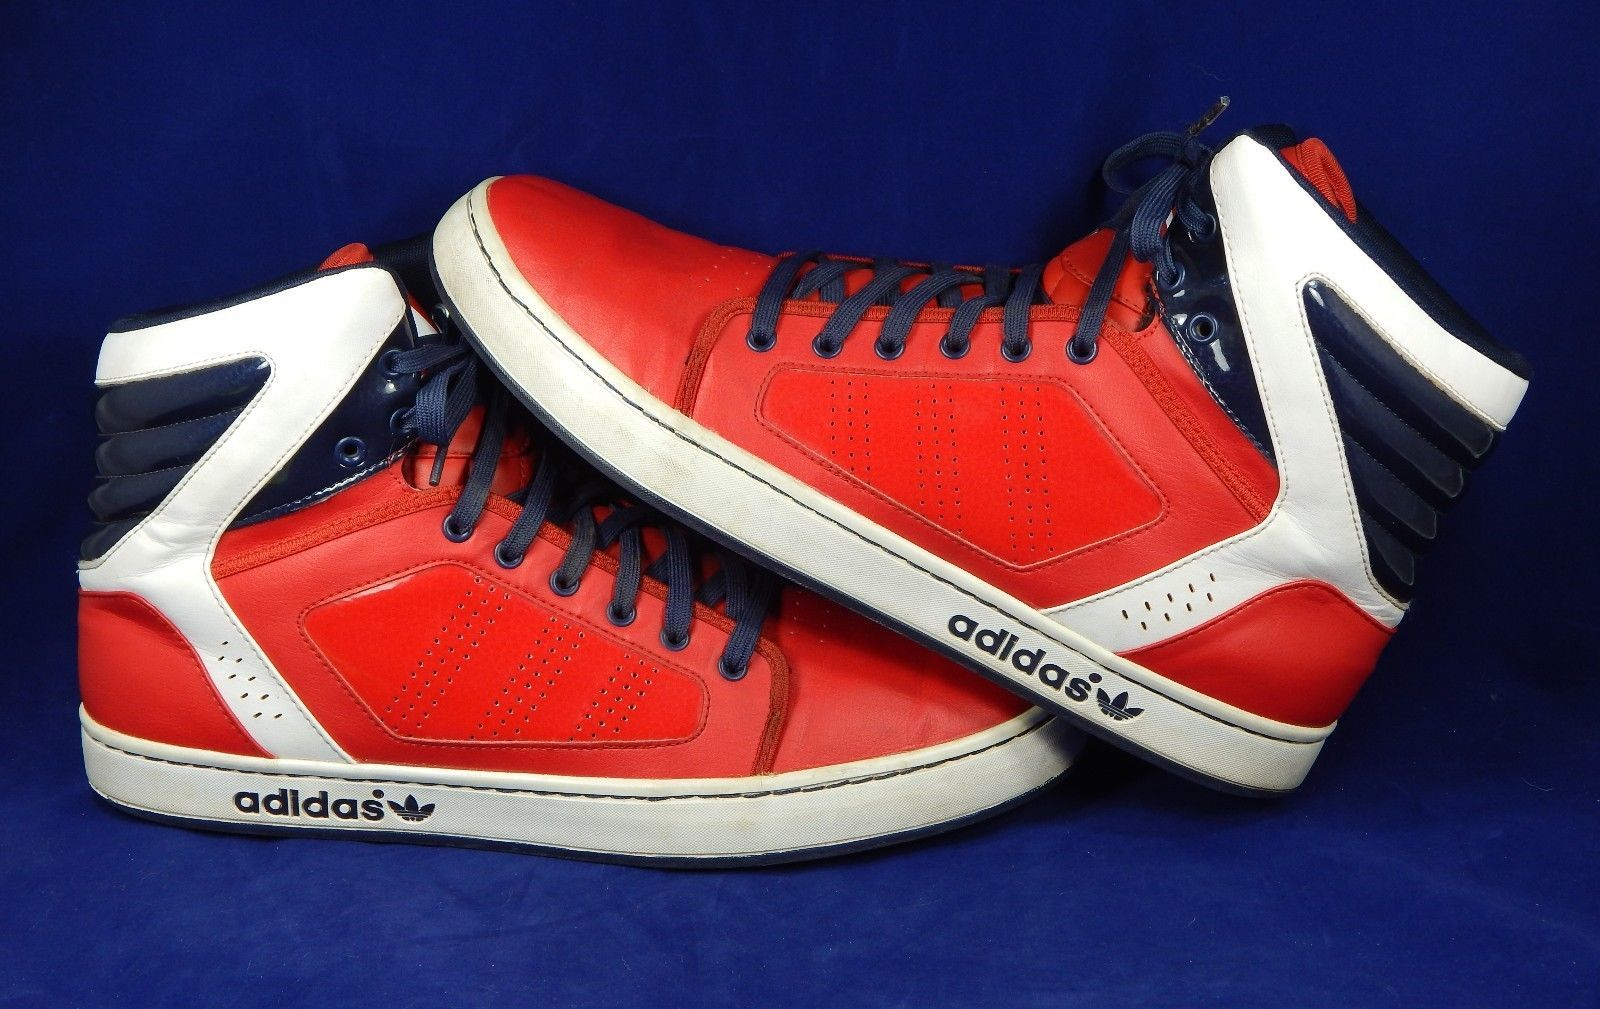 best authentic f1b9a 9c2bf Adidas G56624 Originals ADI High EXT and 50 similar items. 57